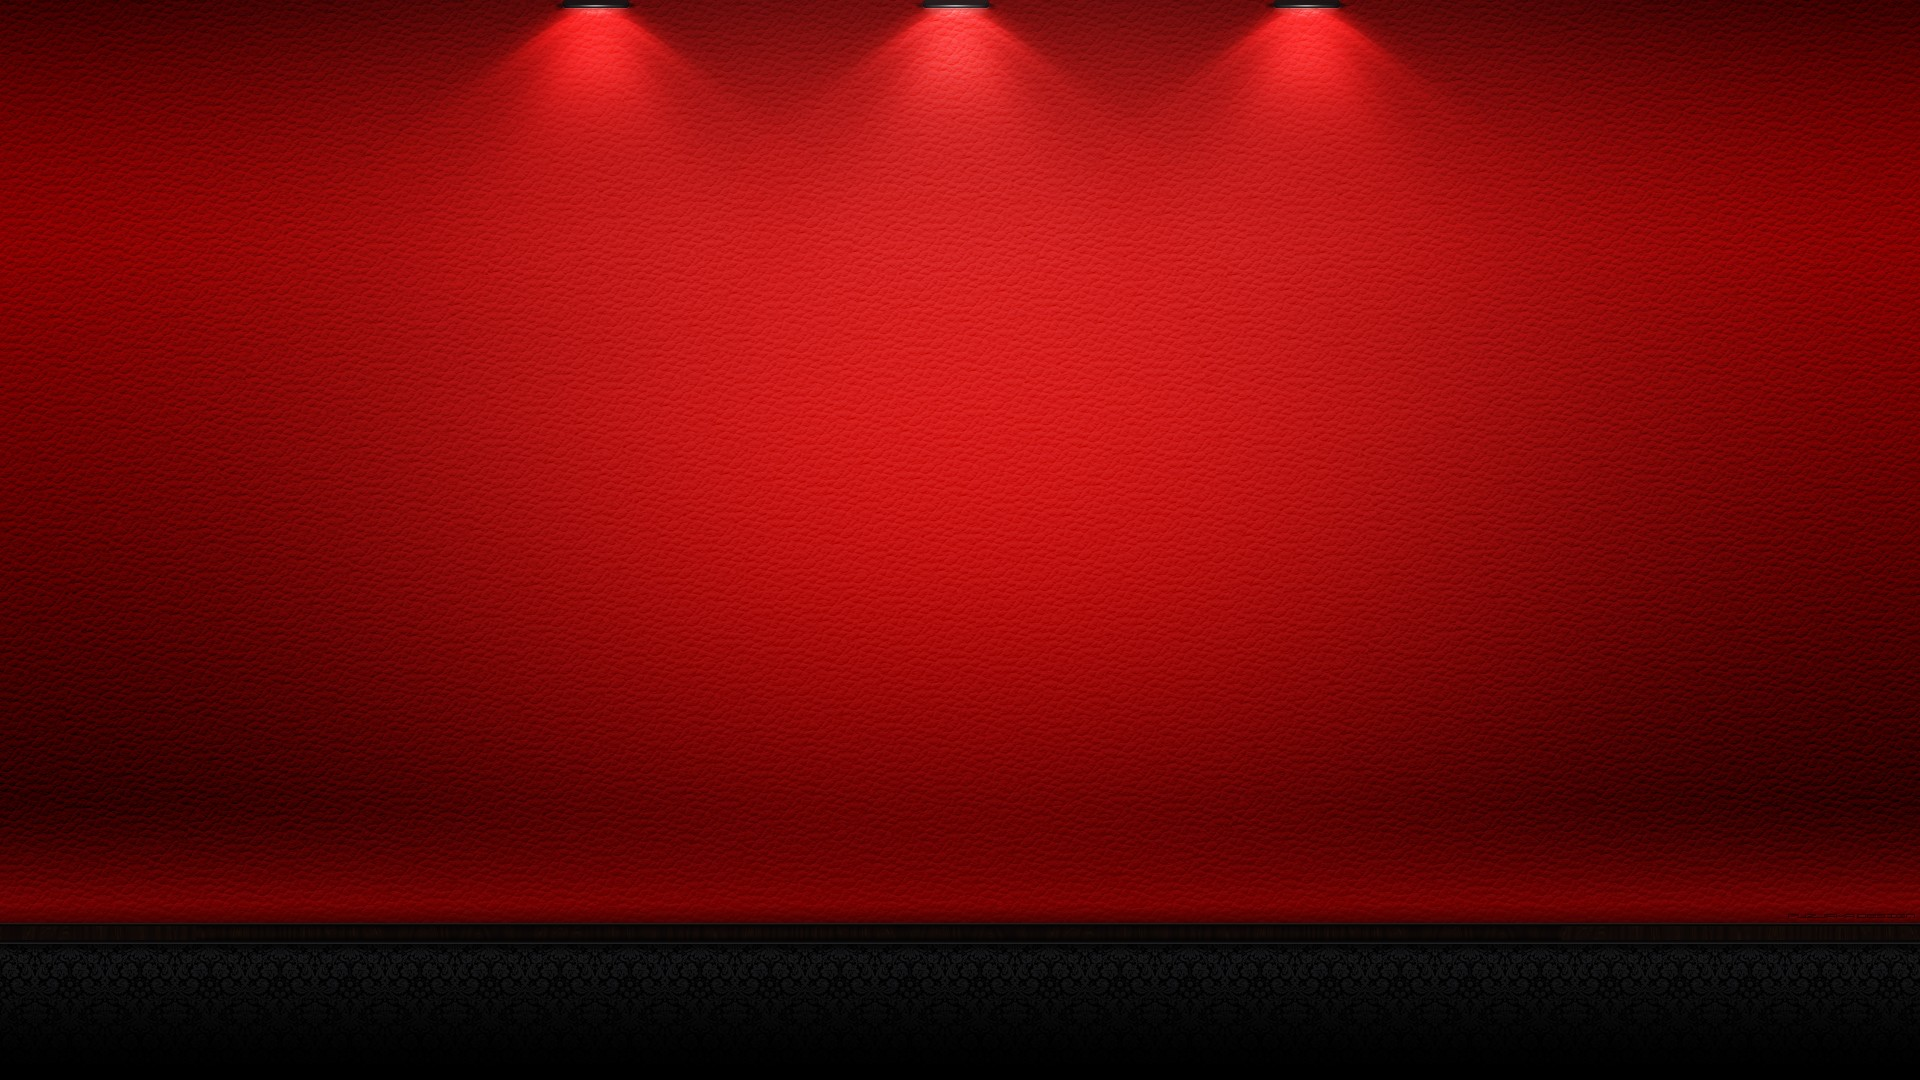 Wallpaper pictures background abstract red - 1363561